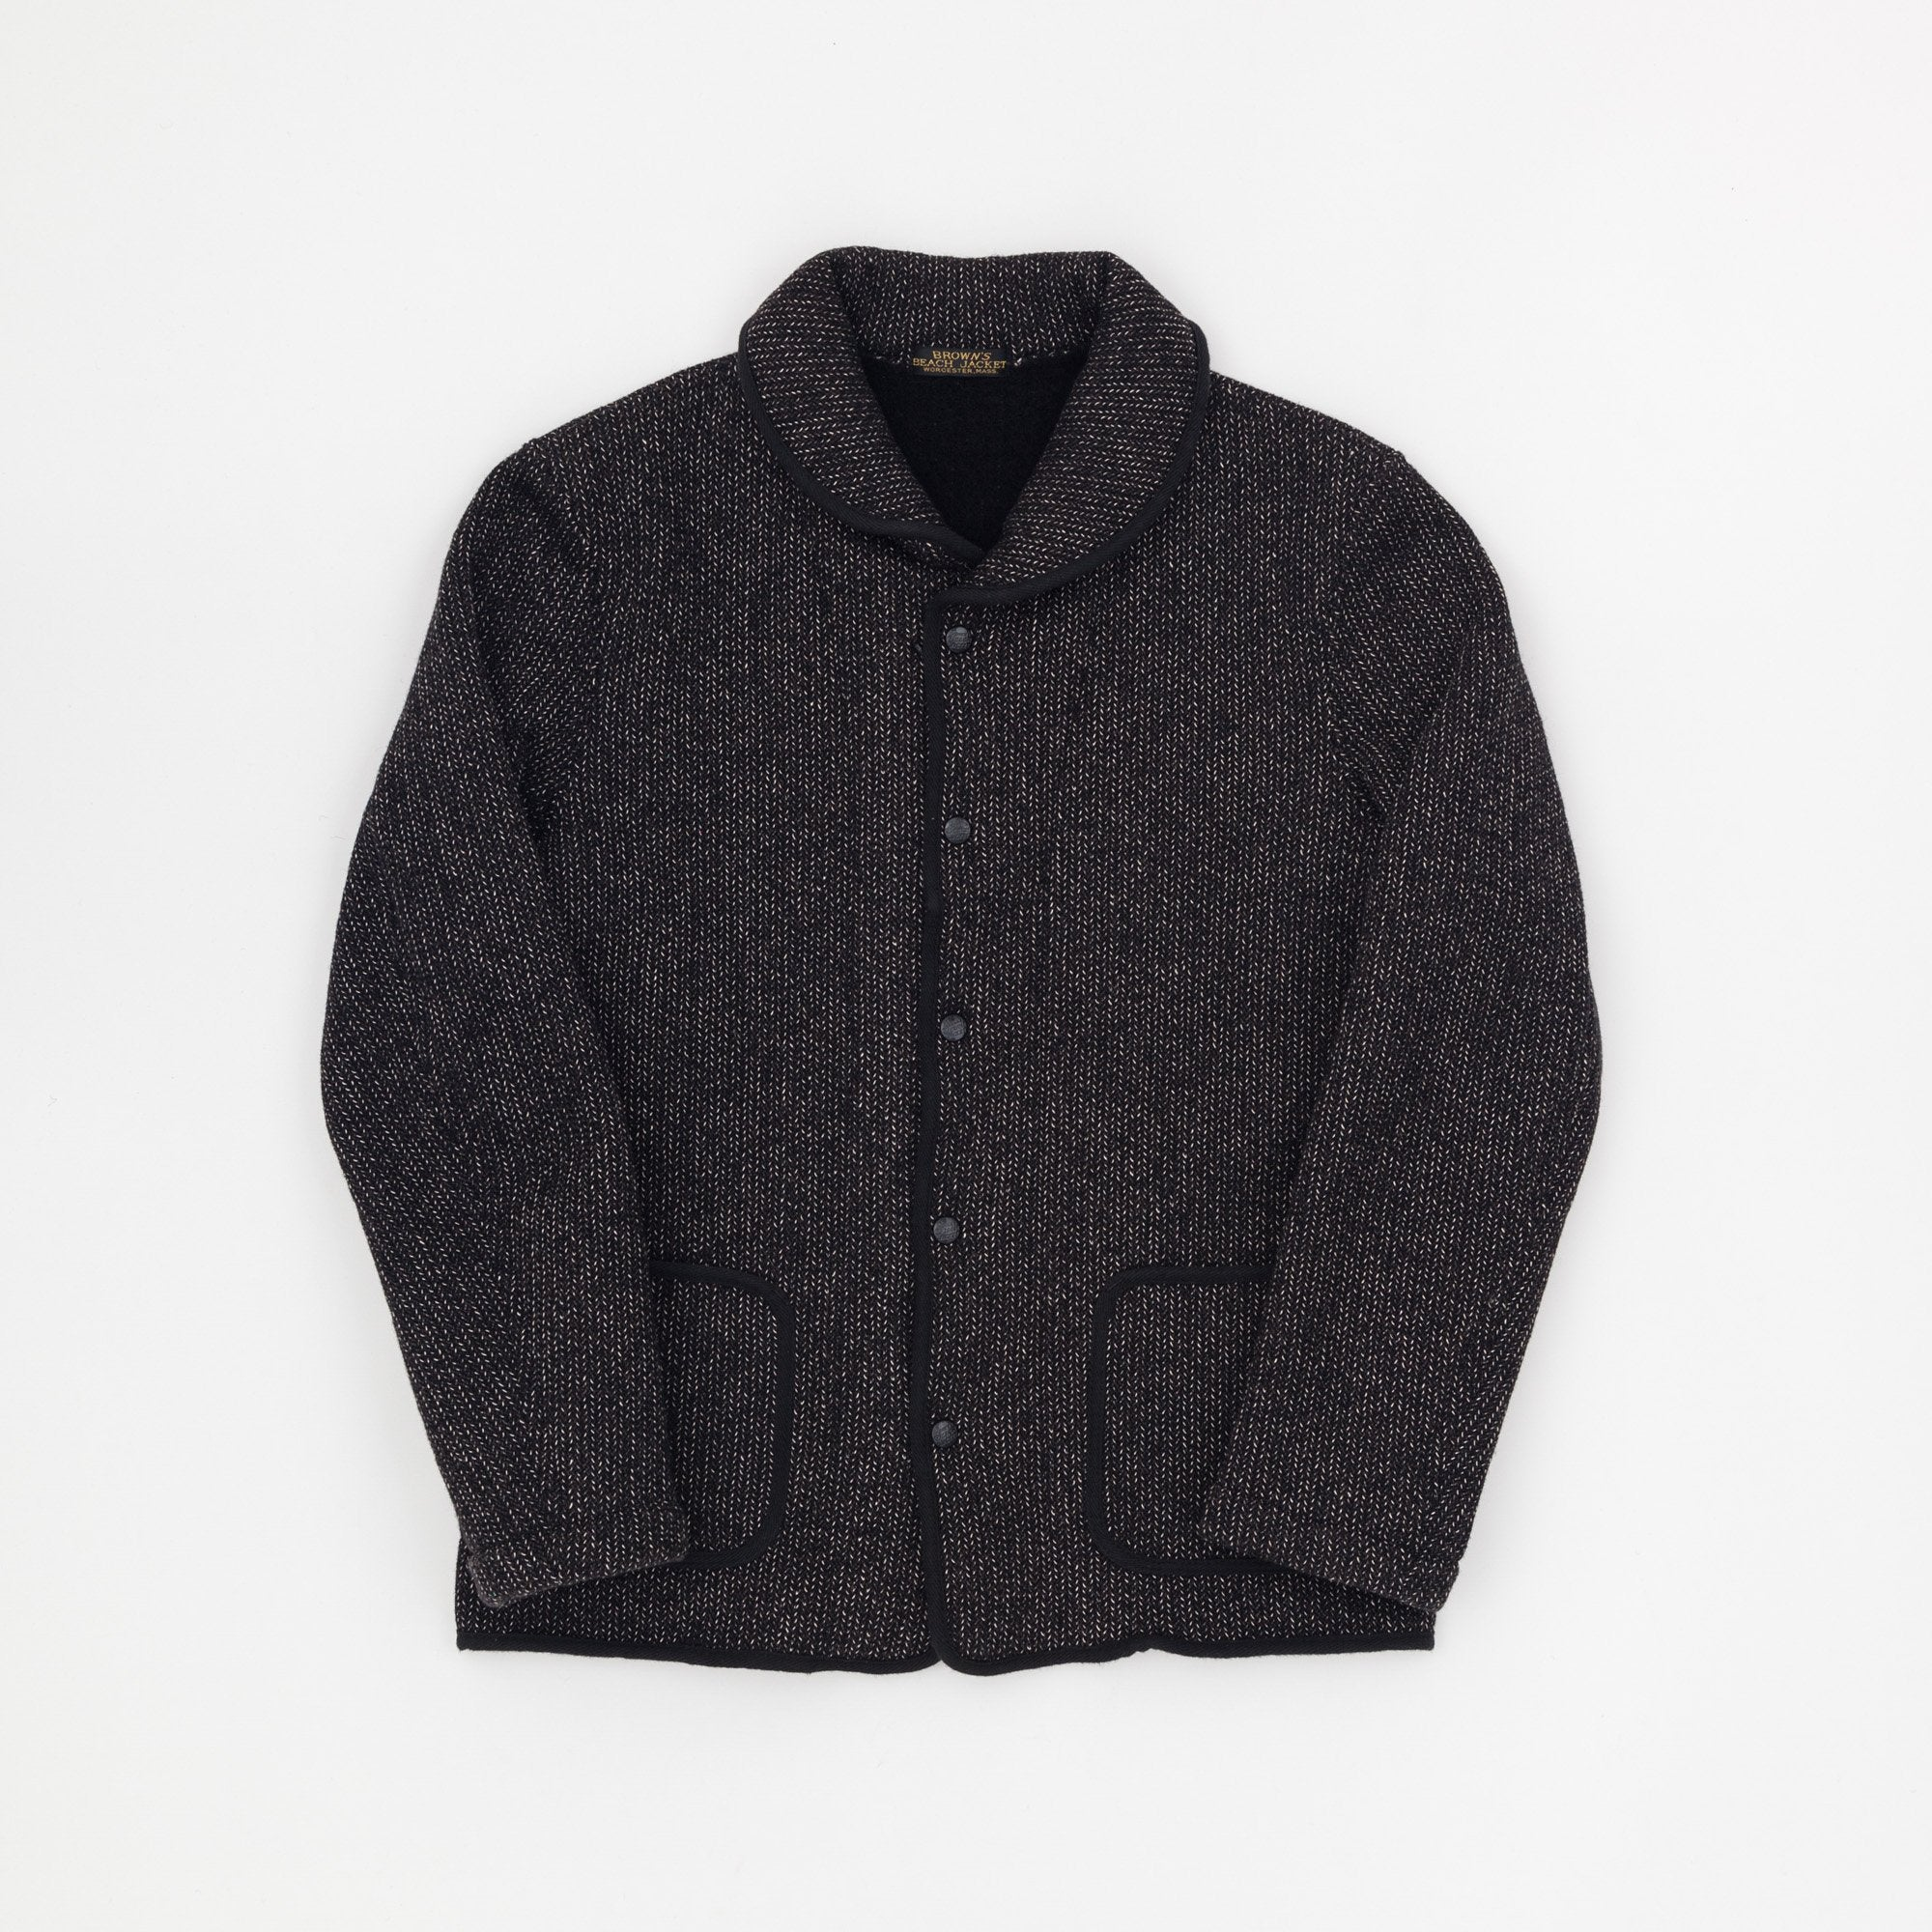 Brown's Beach Shawl Wool Raschel Jacket